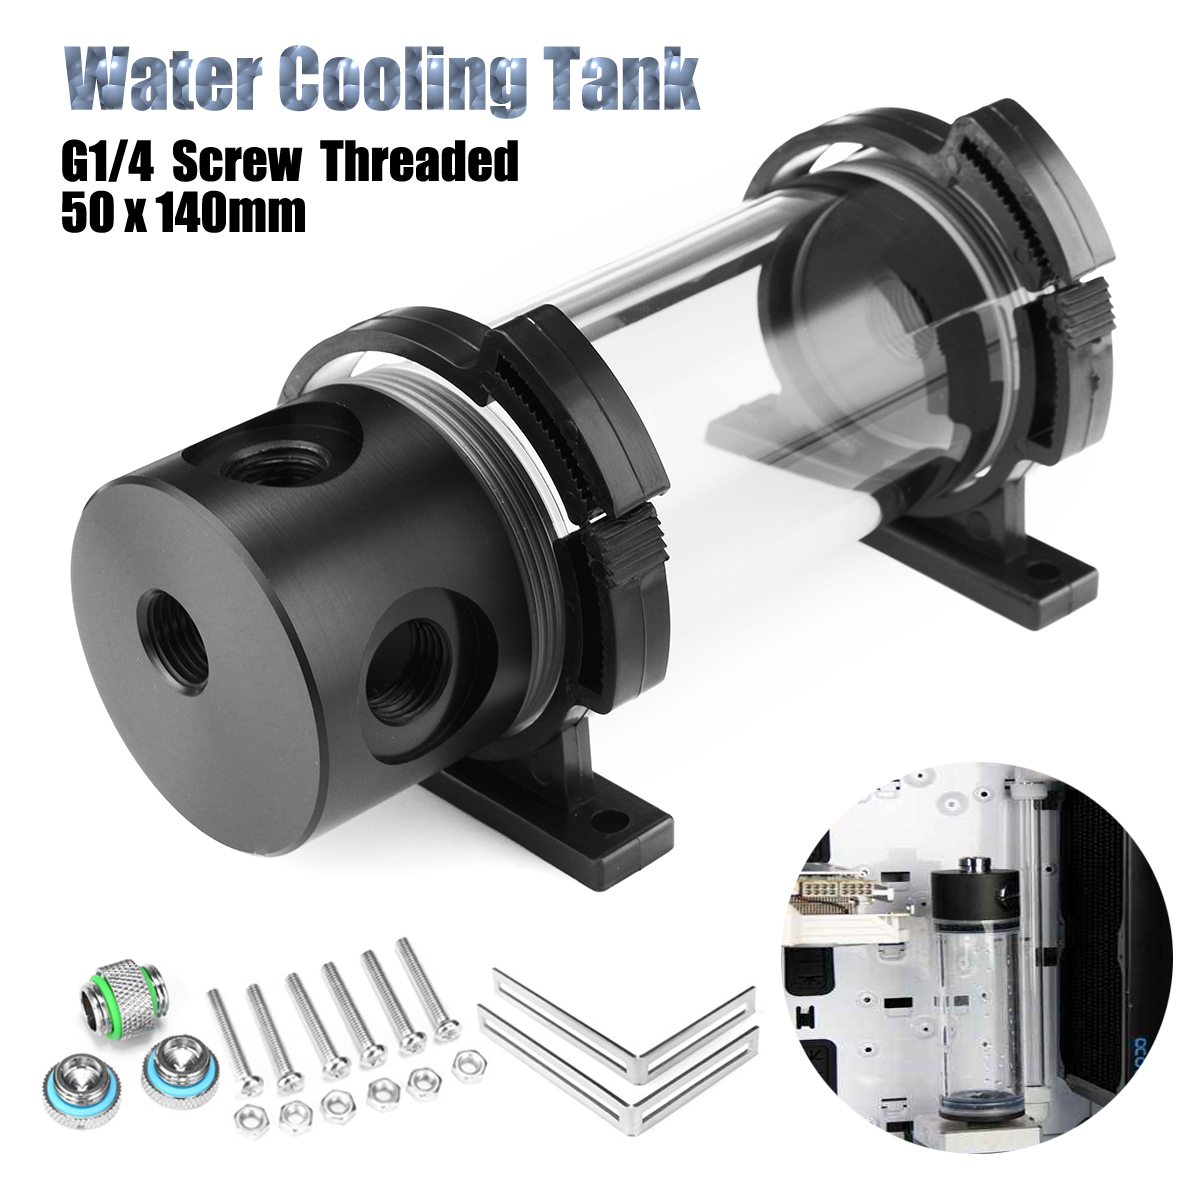 LEORY Acrylic Cylinder Reservoir Water Tank G1/4 50mm x 140mm For PC Liquid Cooling Tank Water Cooling Kit For Computer CPU led aluminum cover virus rotating body water tank computer water liquid cooling new computer water cooling cooler for cpu